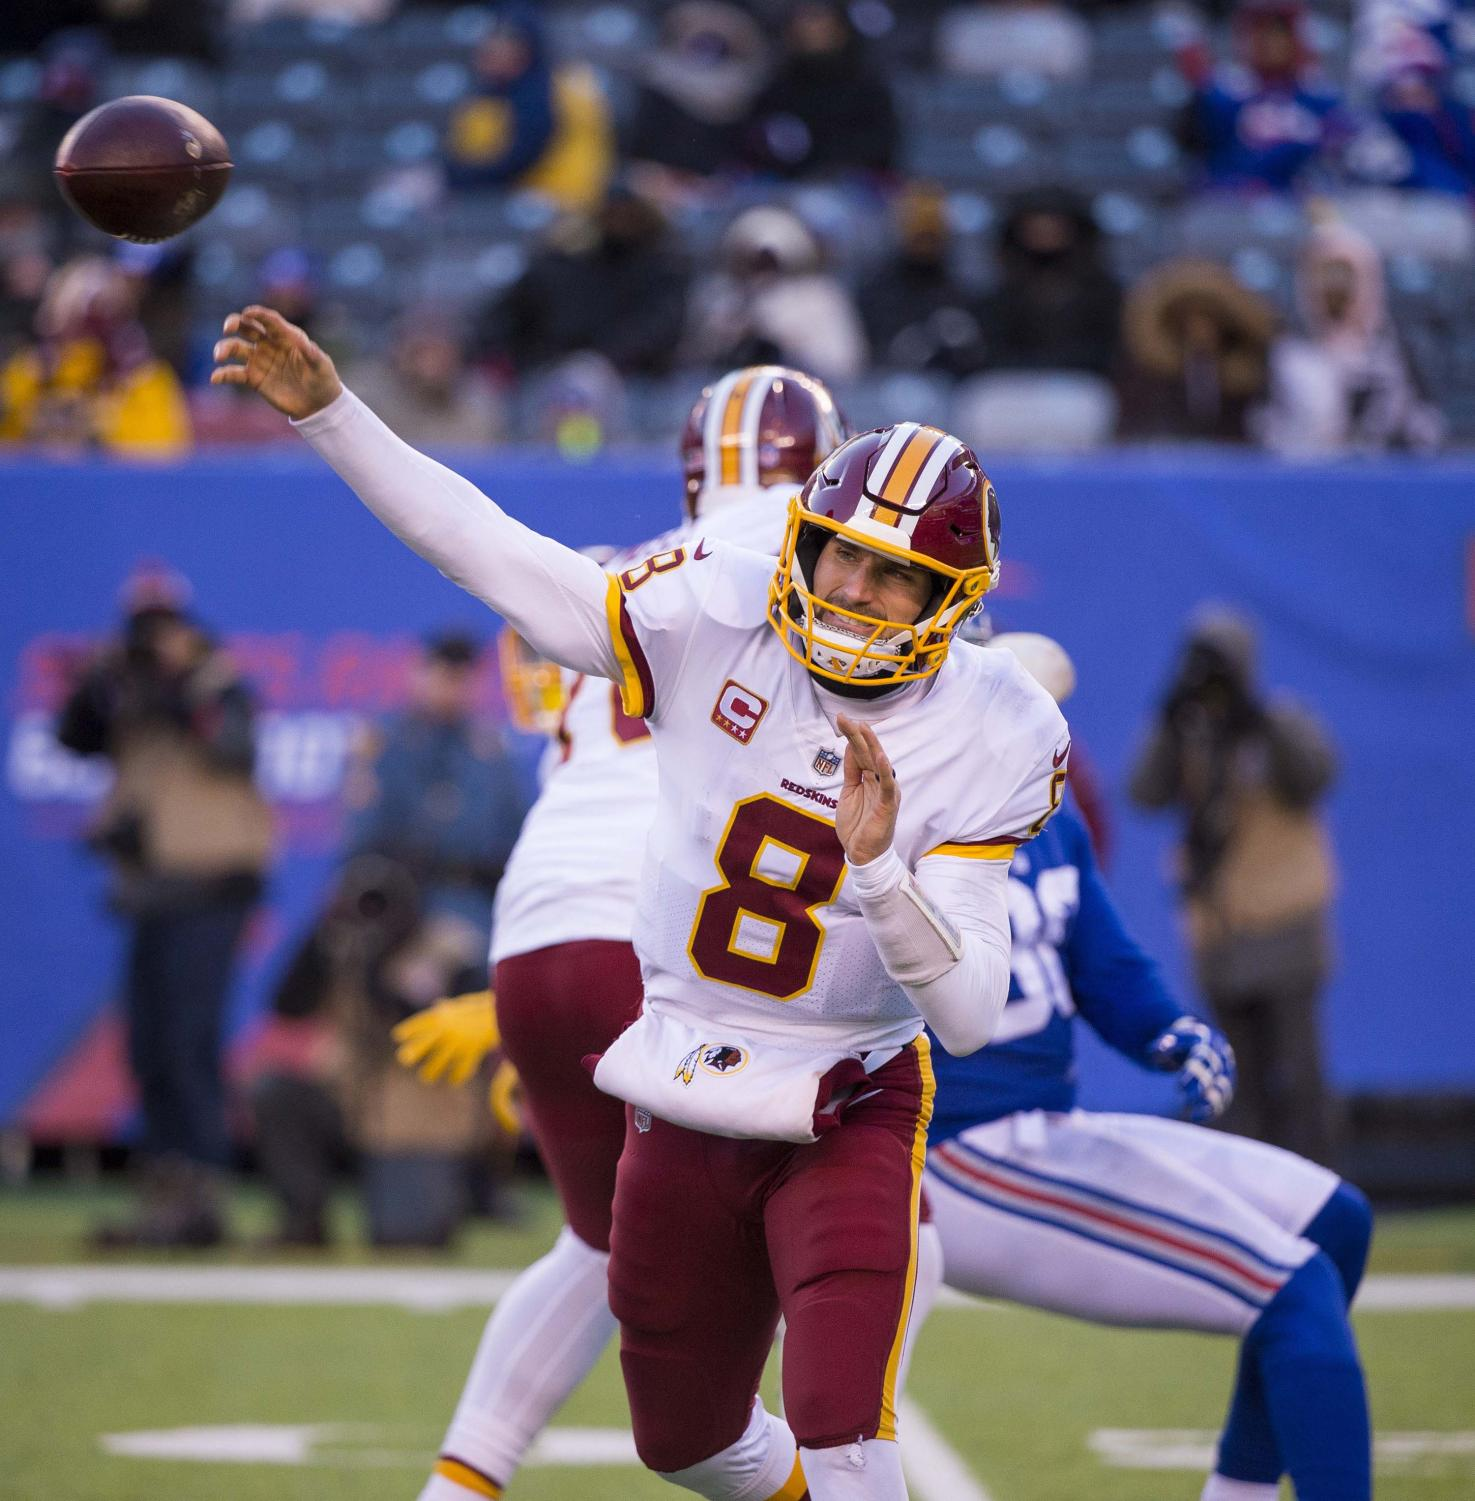 Kirk Cousins throws against the New York Giants.